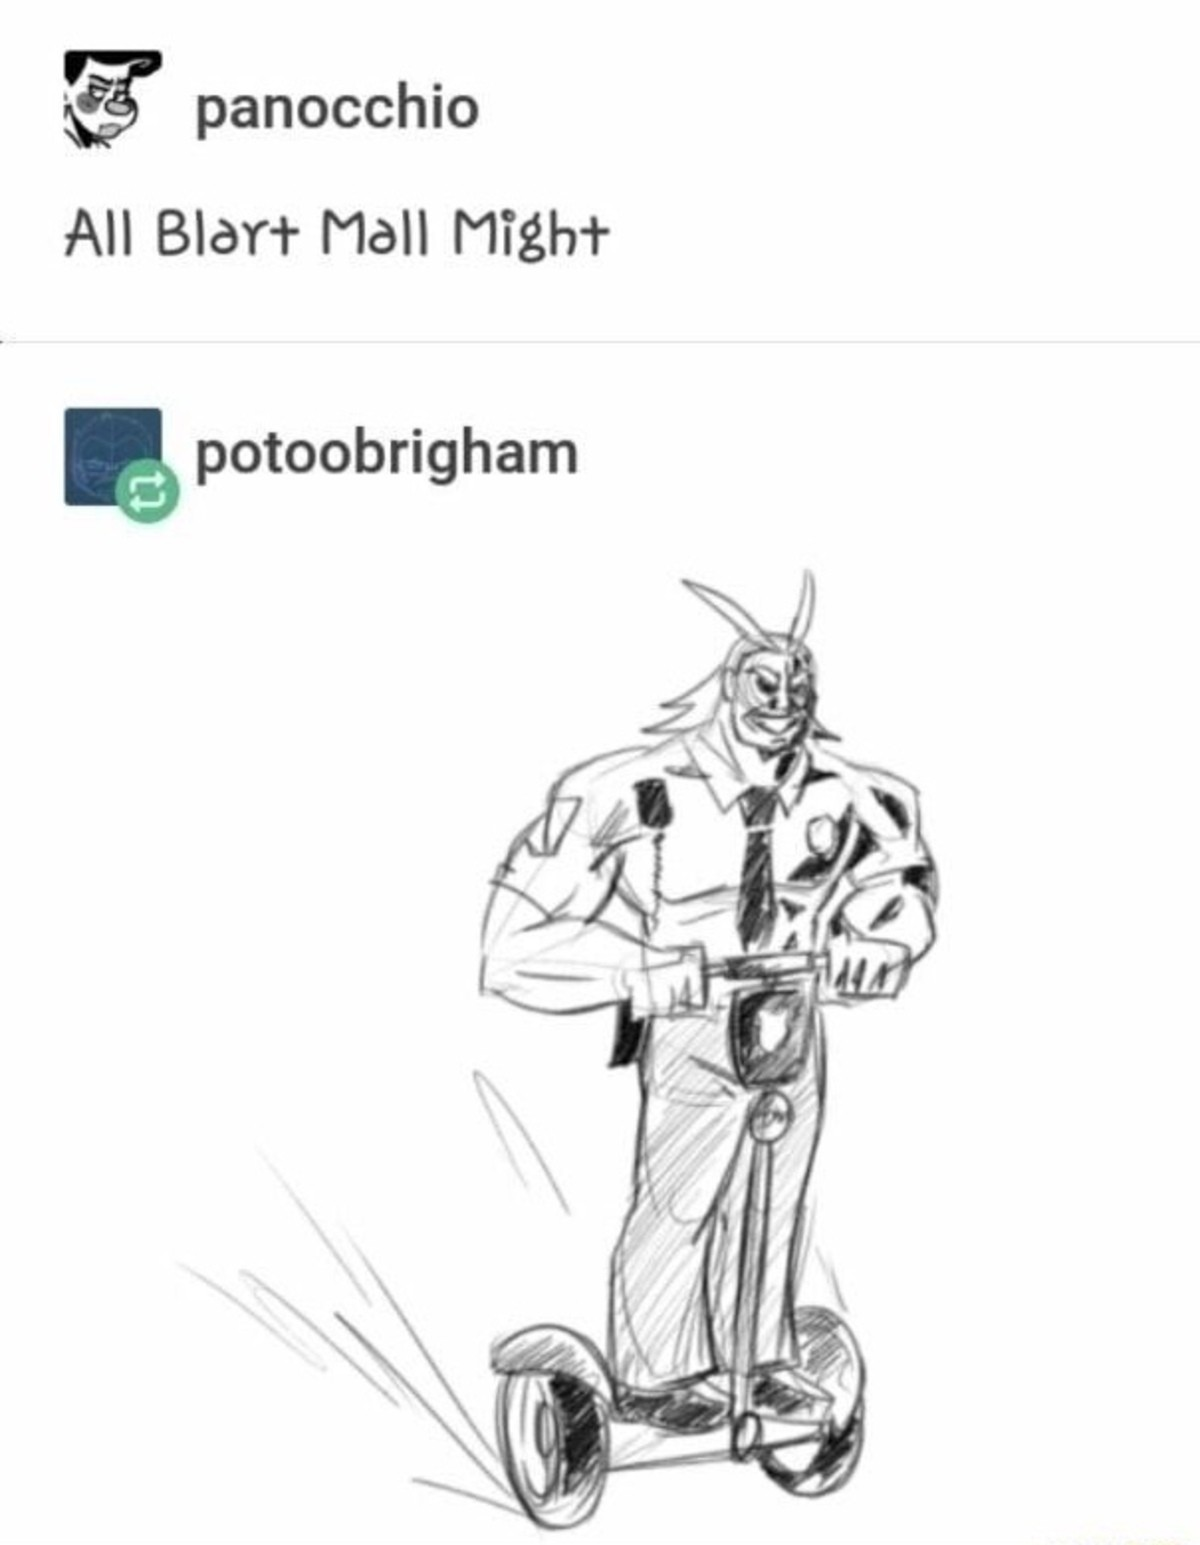 Allmight Cursed. I don't know why. join list: altanimecomps (163 subs)Mention History. pinocchio All Blew Mali. And his fellow rent a cop